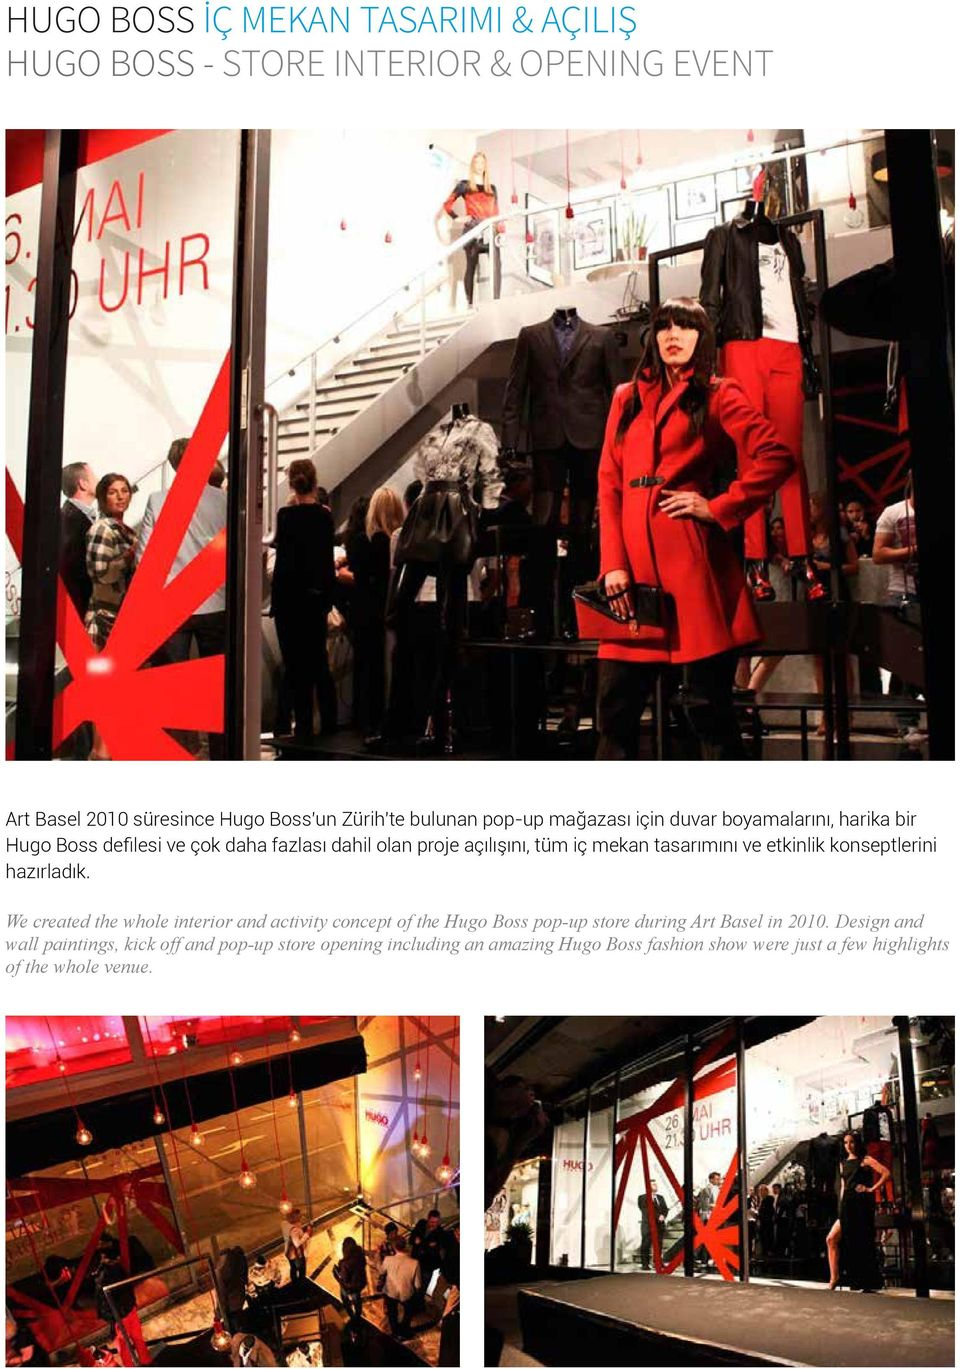 etkinlik konseptlerini hazırladık. We created the whole interior and activity concept of the Hugo Boss pop-up store during Art Basel in 2010.